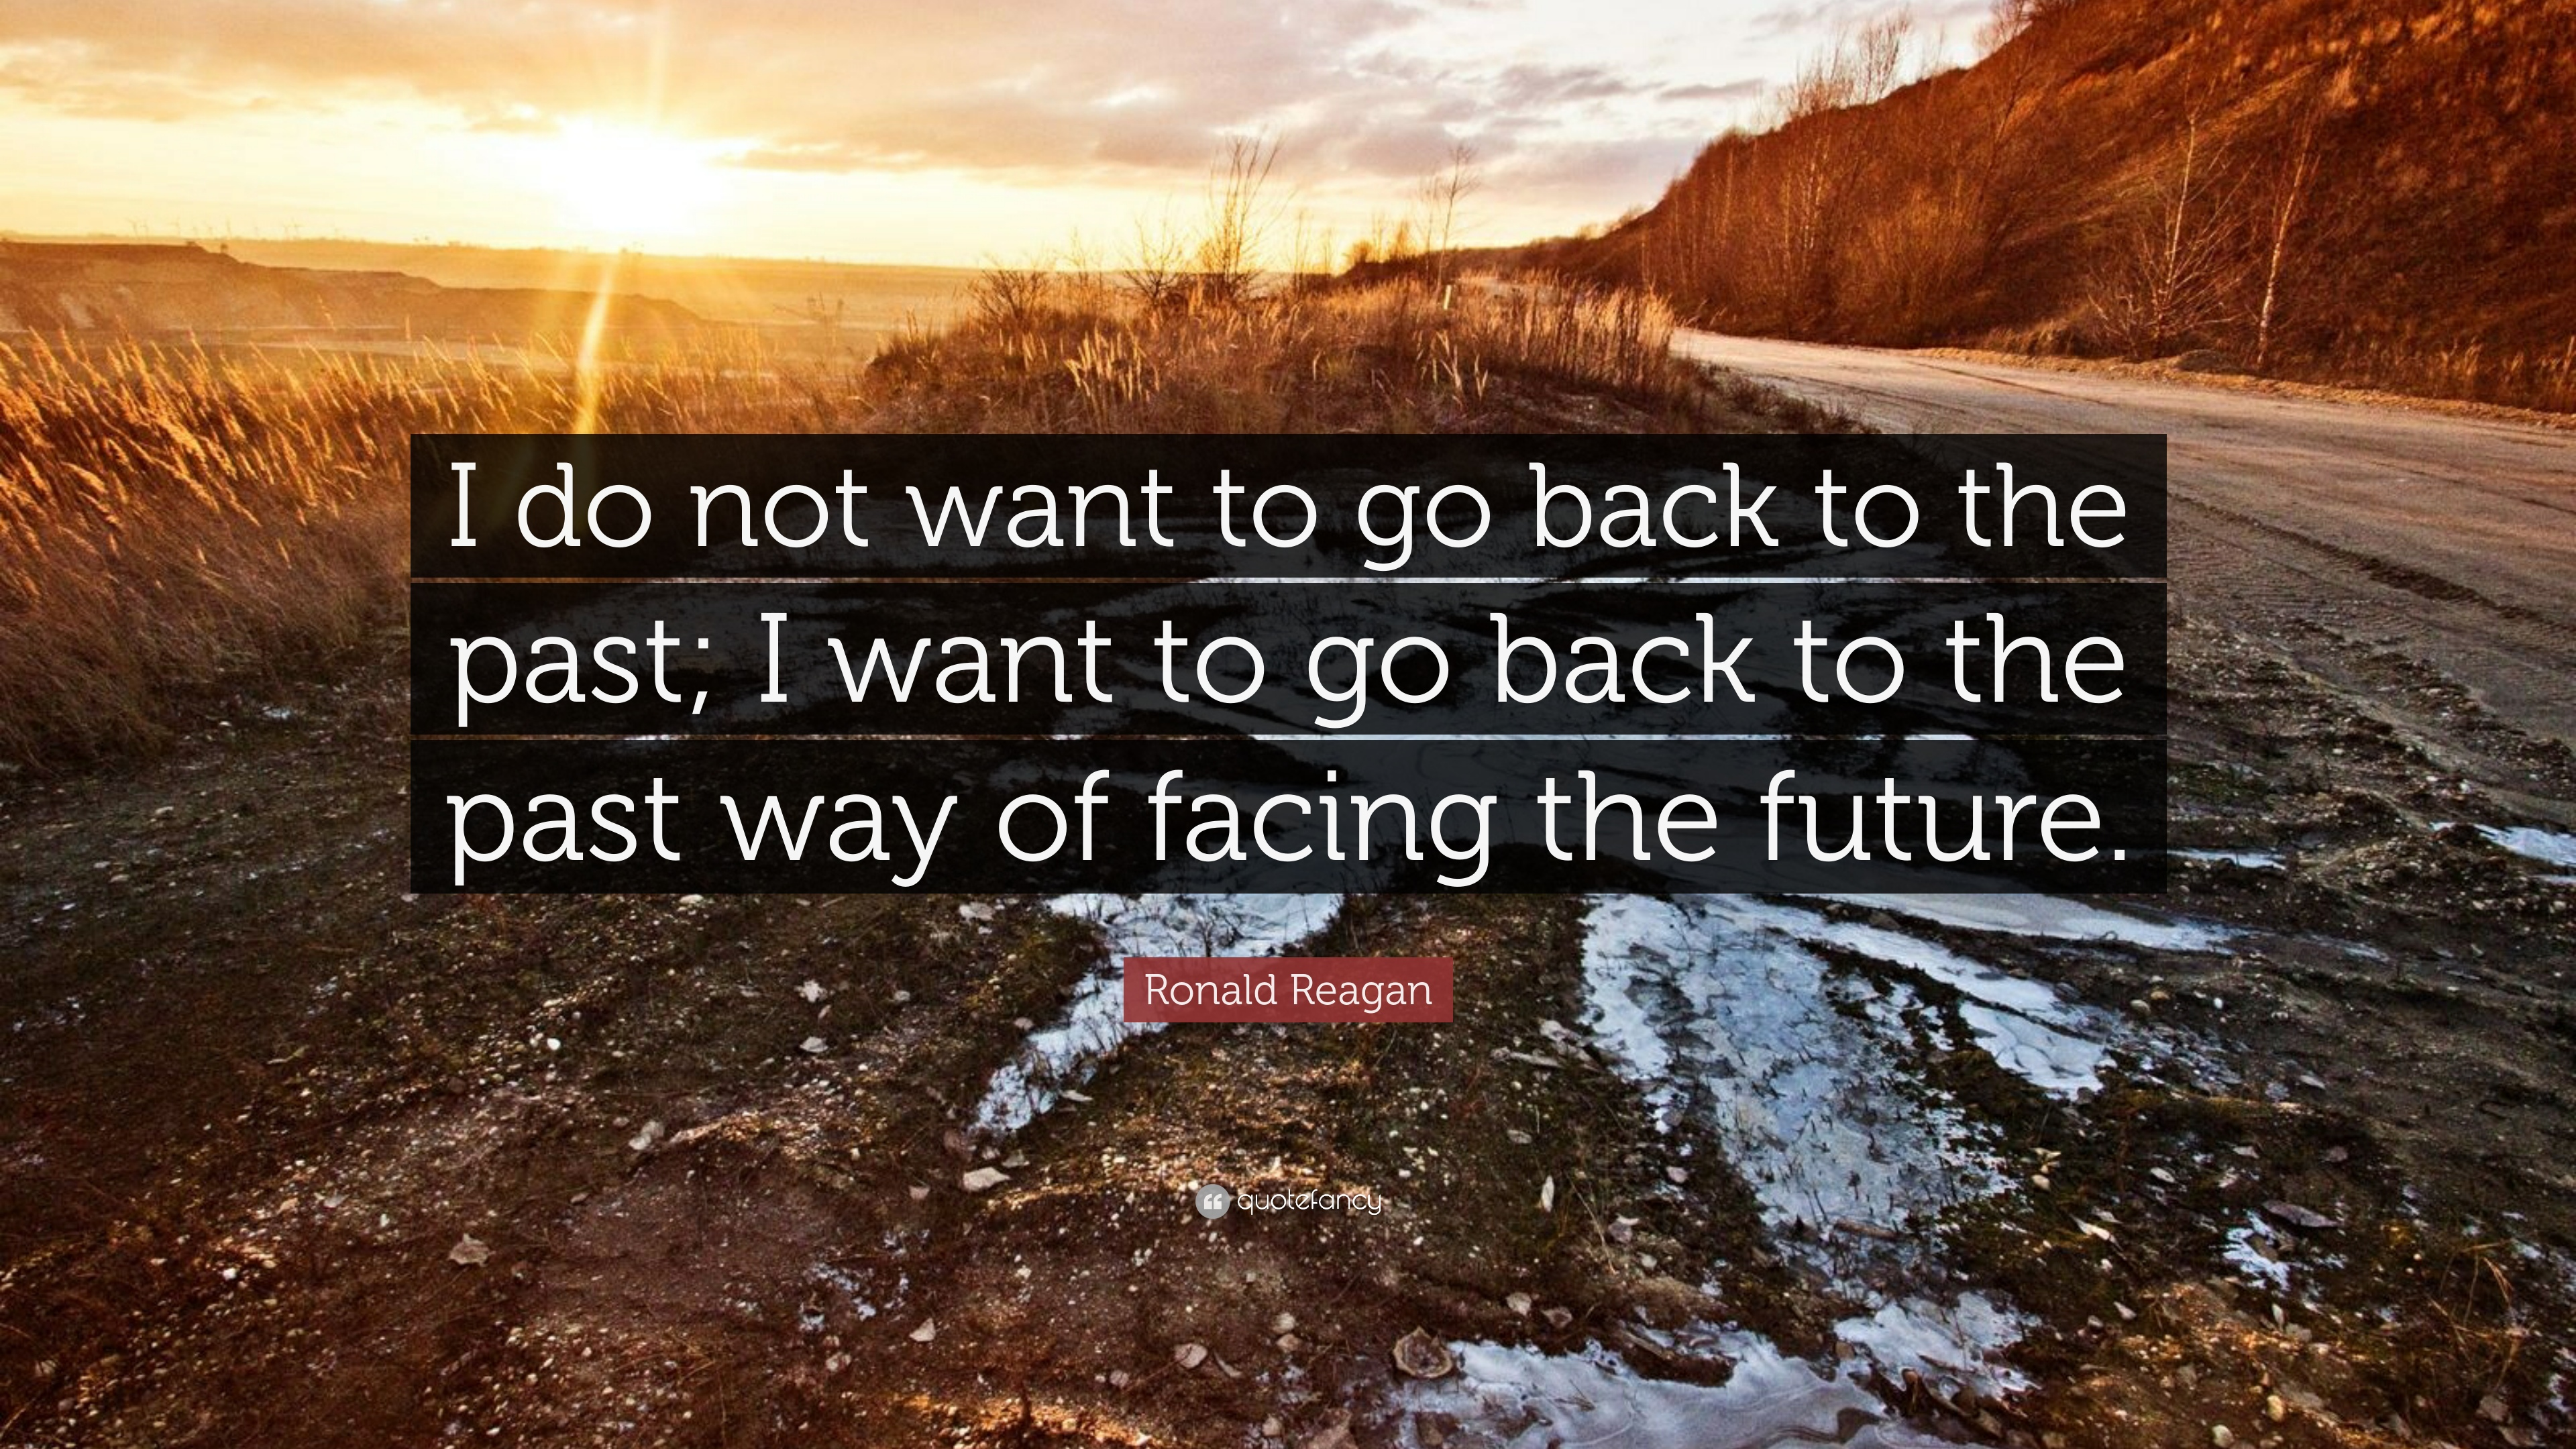 "Going Back To My Old Ways Quotes: Ronald Reagan Quote: ""I Do Not Want To Go Back To The Past"